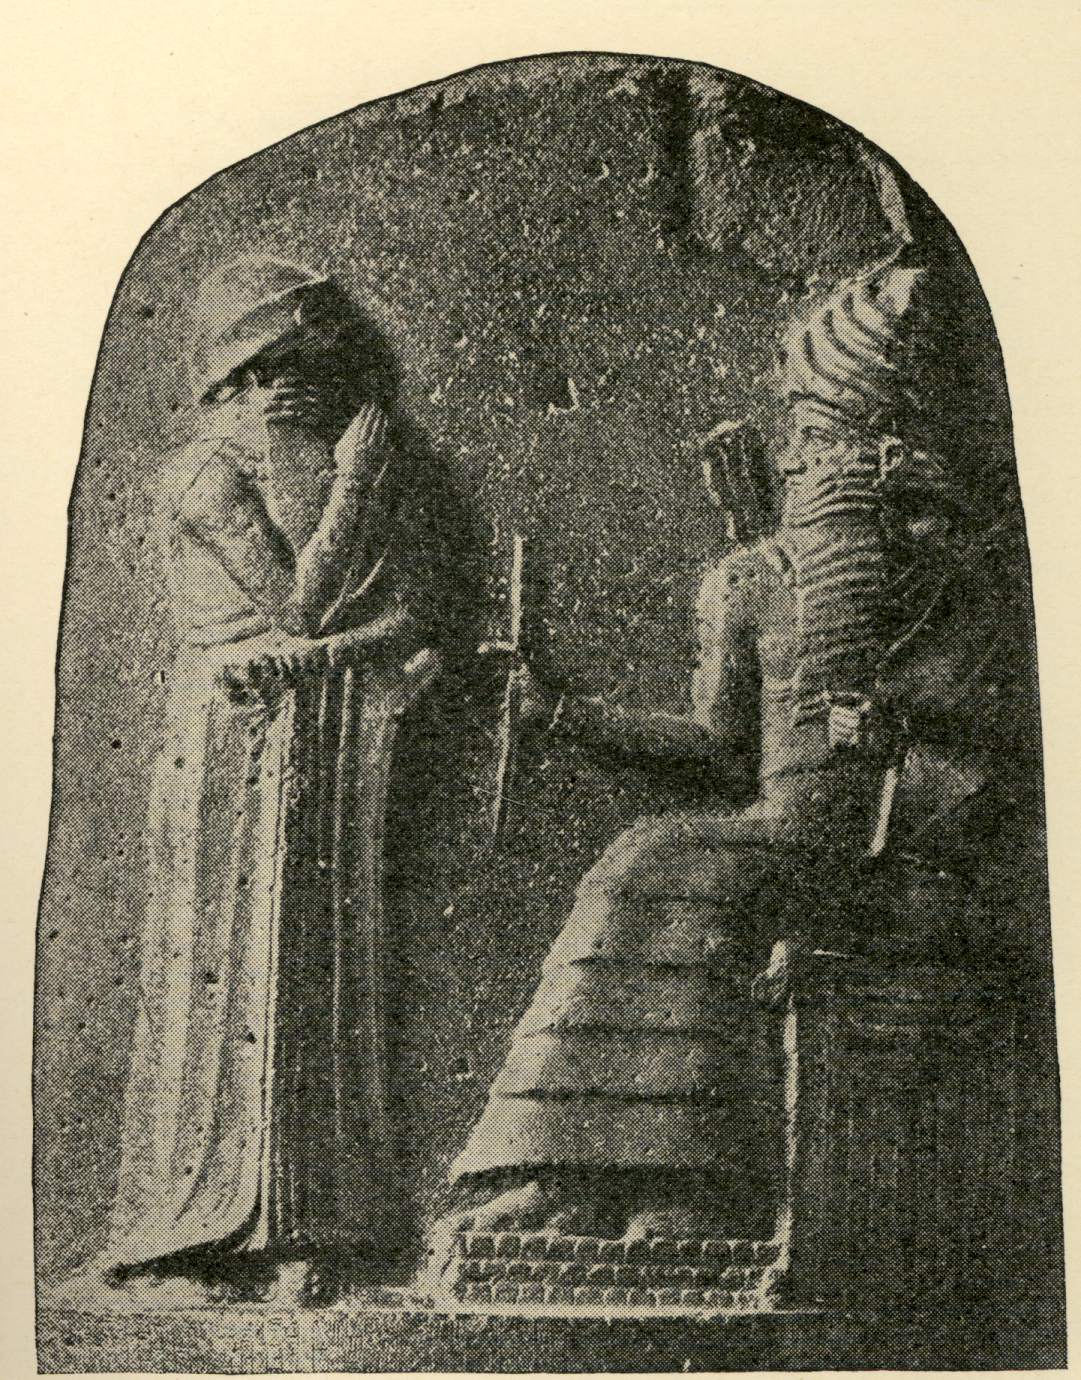 74 - Shamash & Hammurabi, great king of Babylon